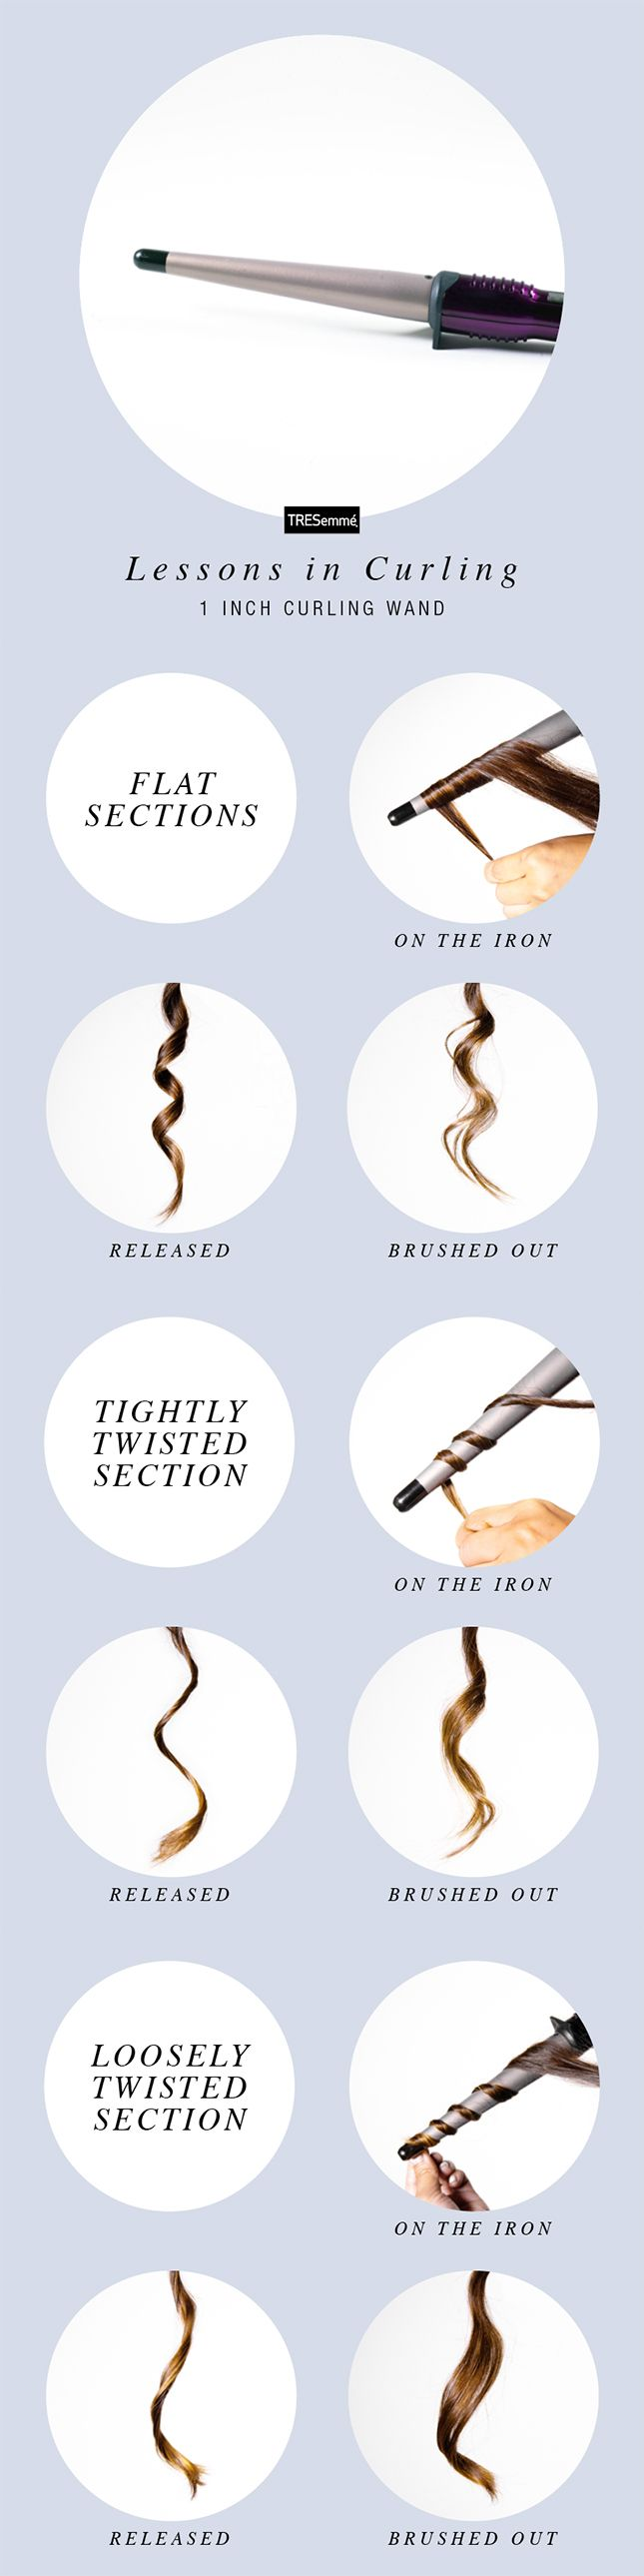 "Remember the first time you saw a curling wand and thought, ""how am I supposed to curl my ends without a clamp?!"" Time to embrace the rock n' roll straight-end look or master a heat glove, friends, because wands hold the secrets to some gorgeous hair."